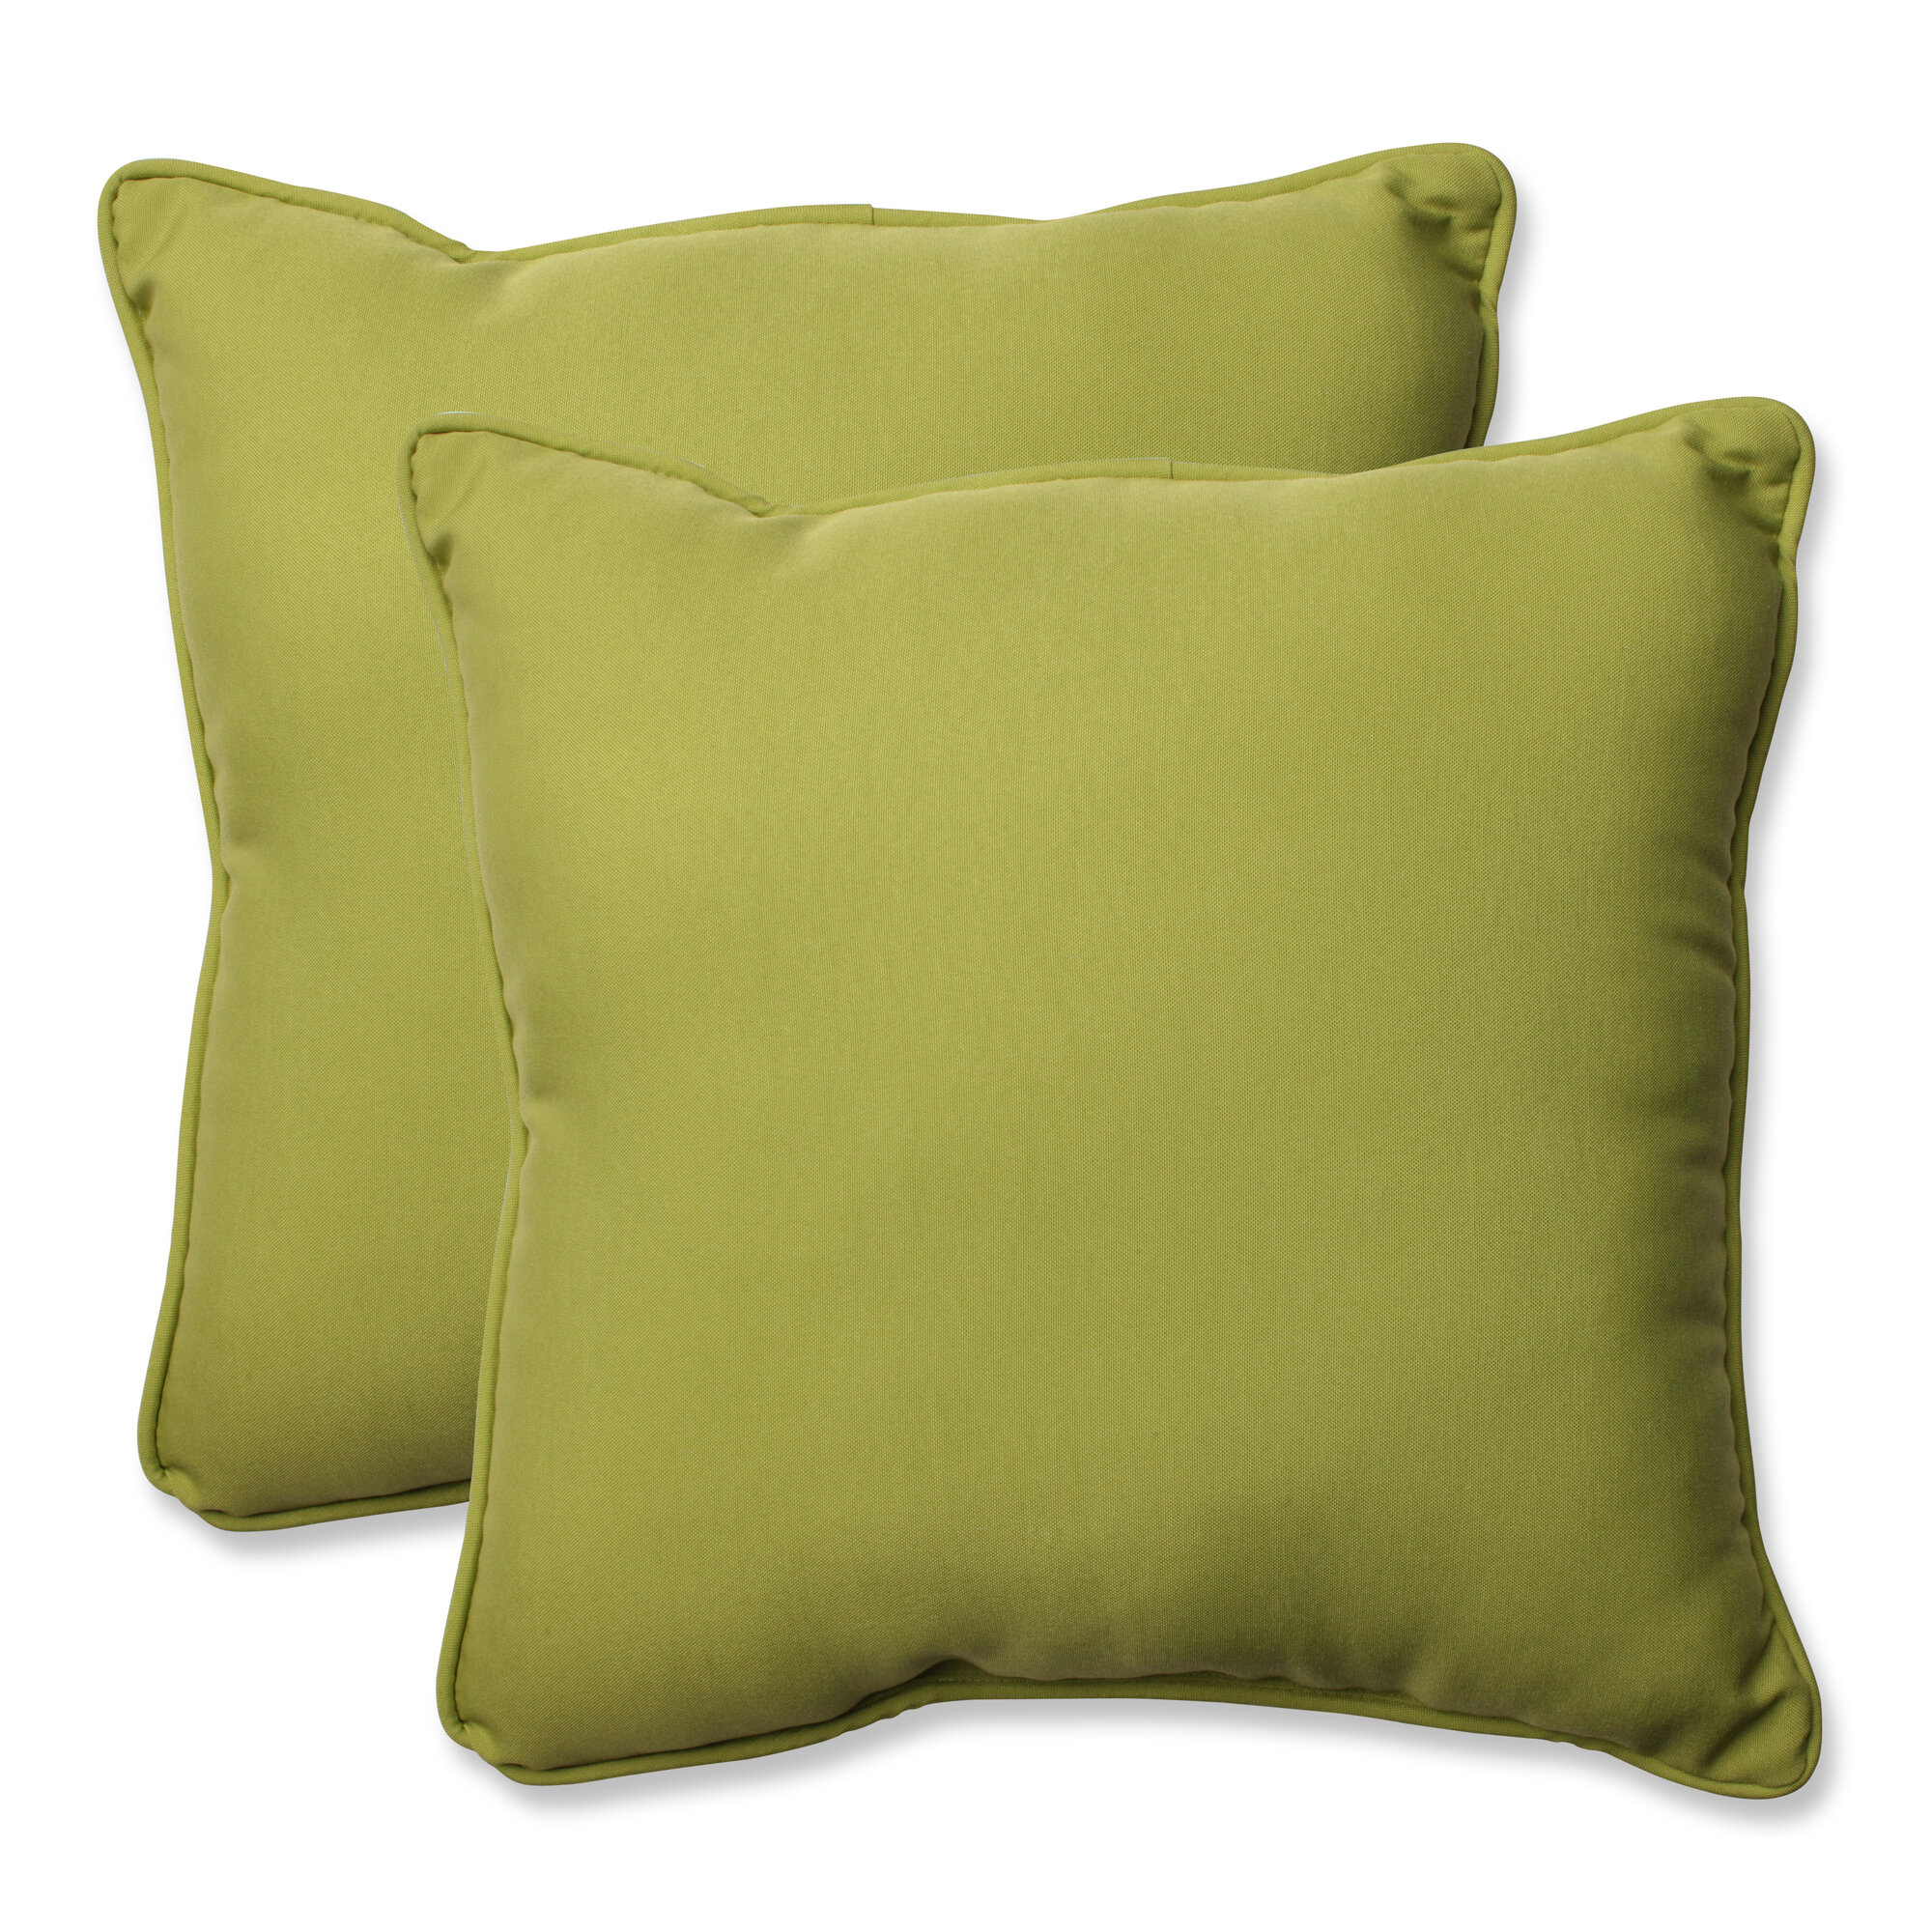 Outdoor Decorative Pillow Sets : Pillow Perfect Indoor/Outdoor Throw Pillow Set of 2 eBay